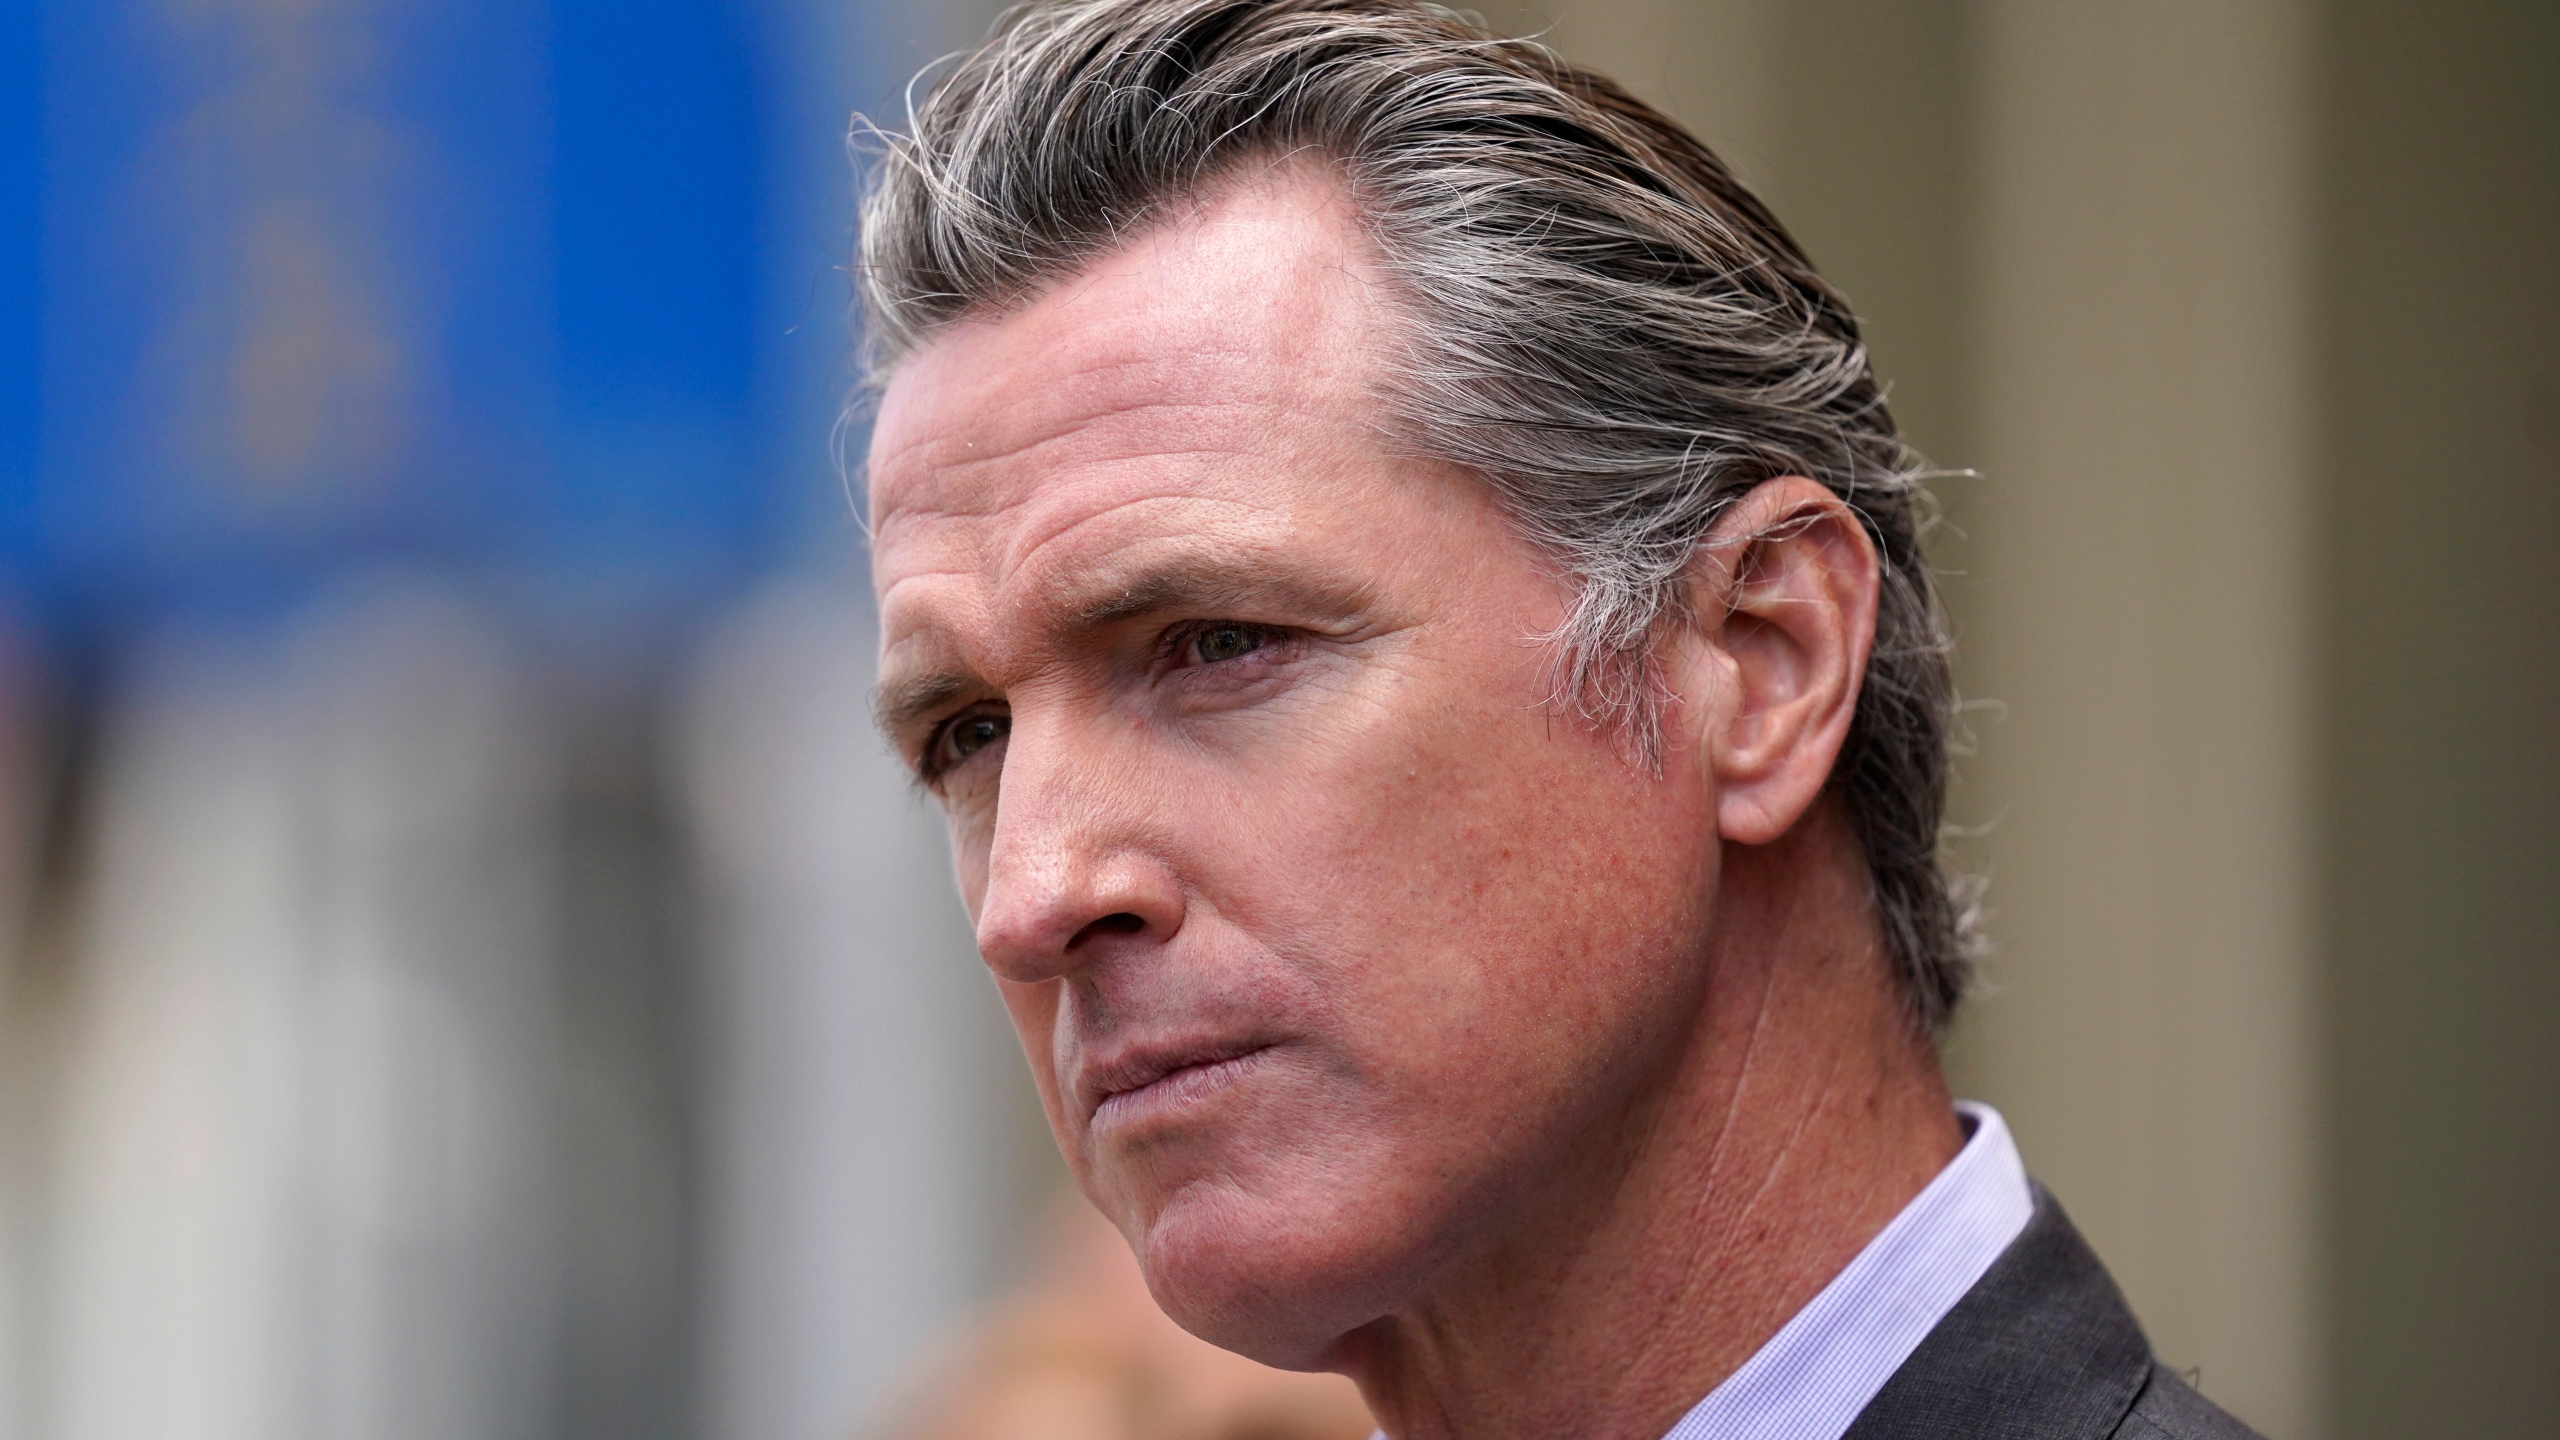 In this June 3, 2021 file photo, California Gov. Gavin Newsom listens to questions during a news conference in San Francisco (AP Photo/Eric Risberg, File)